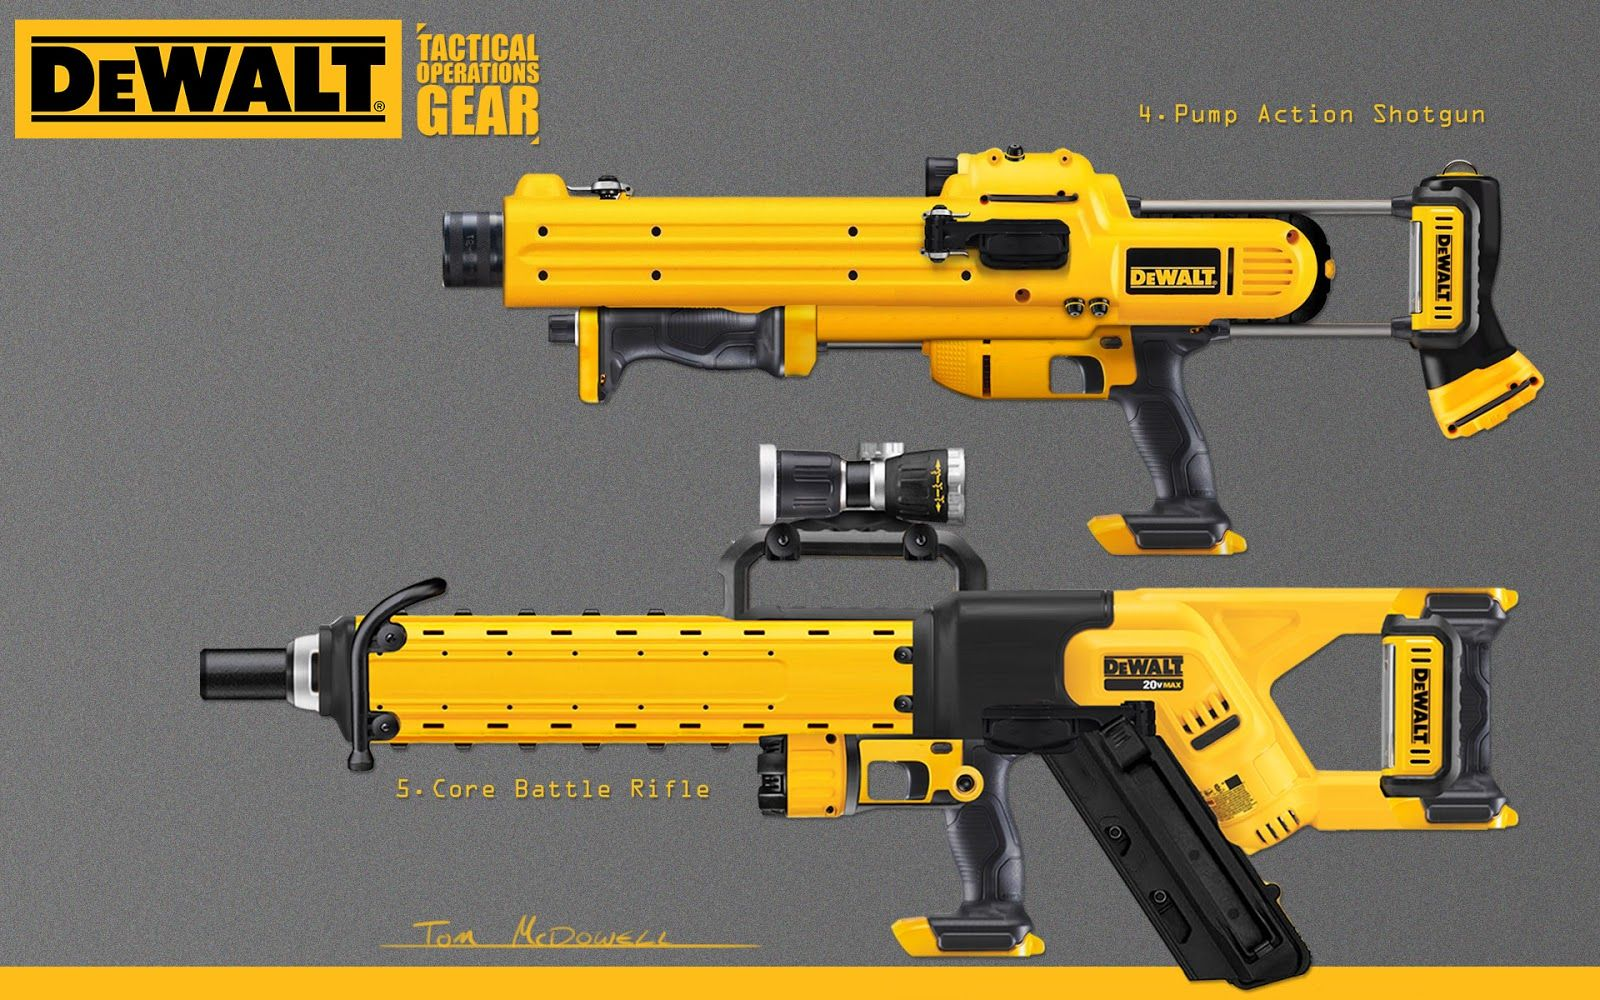 Well, I thought a DeWalt weapons project might have some legs. Here ...